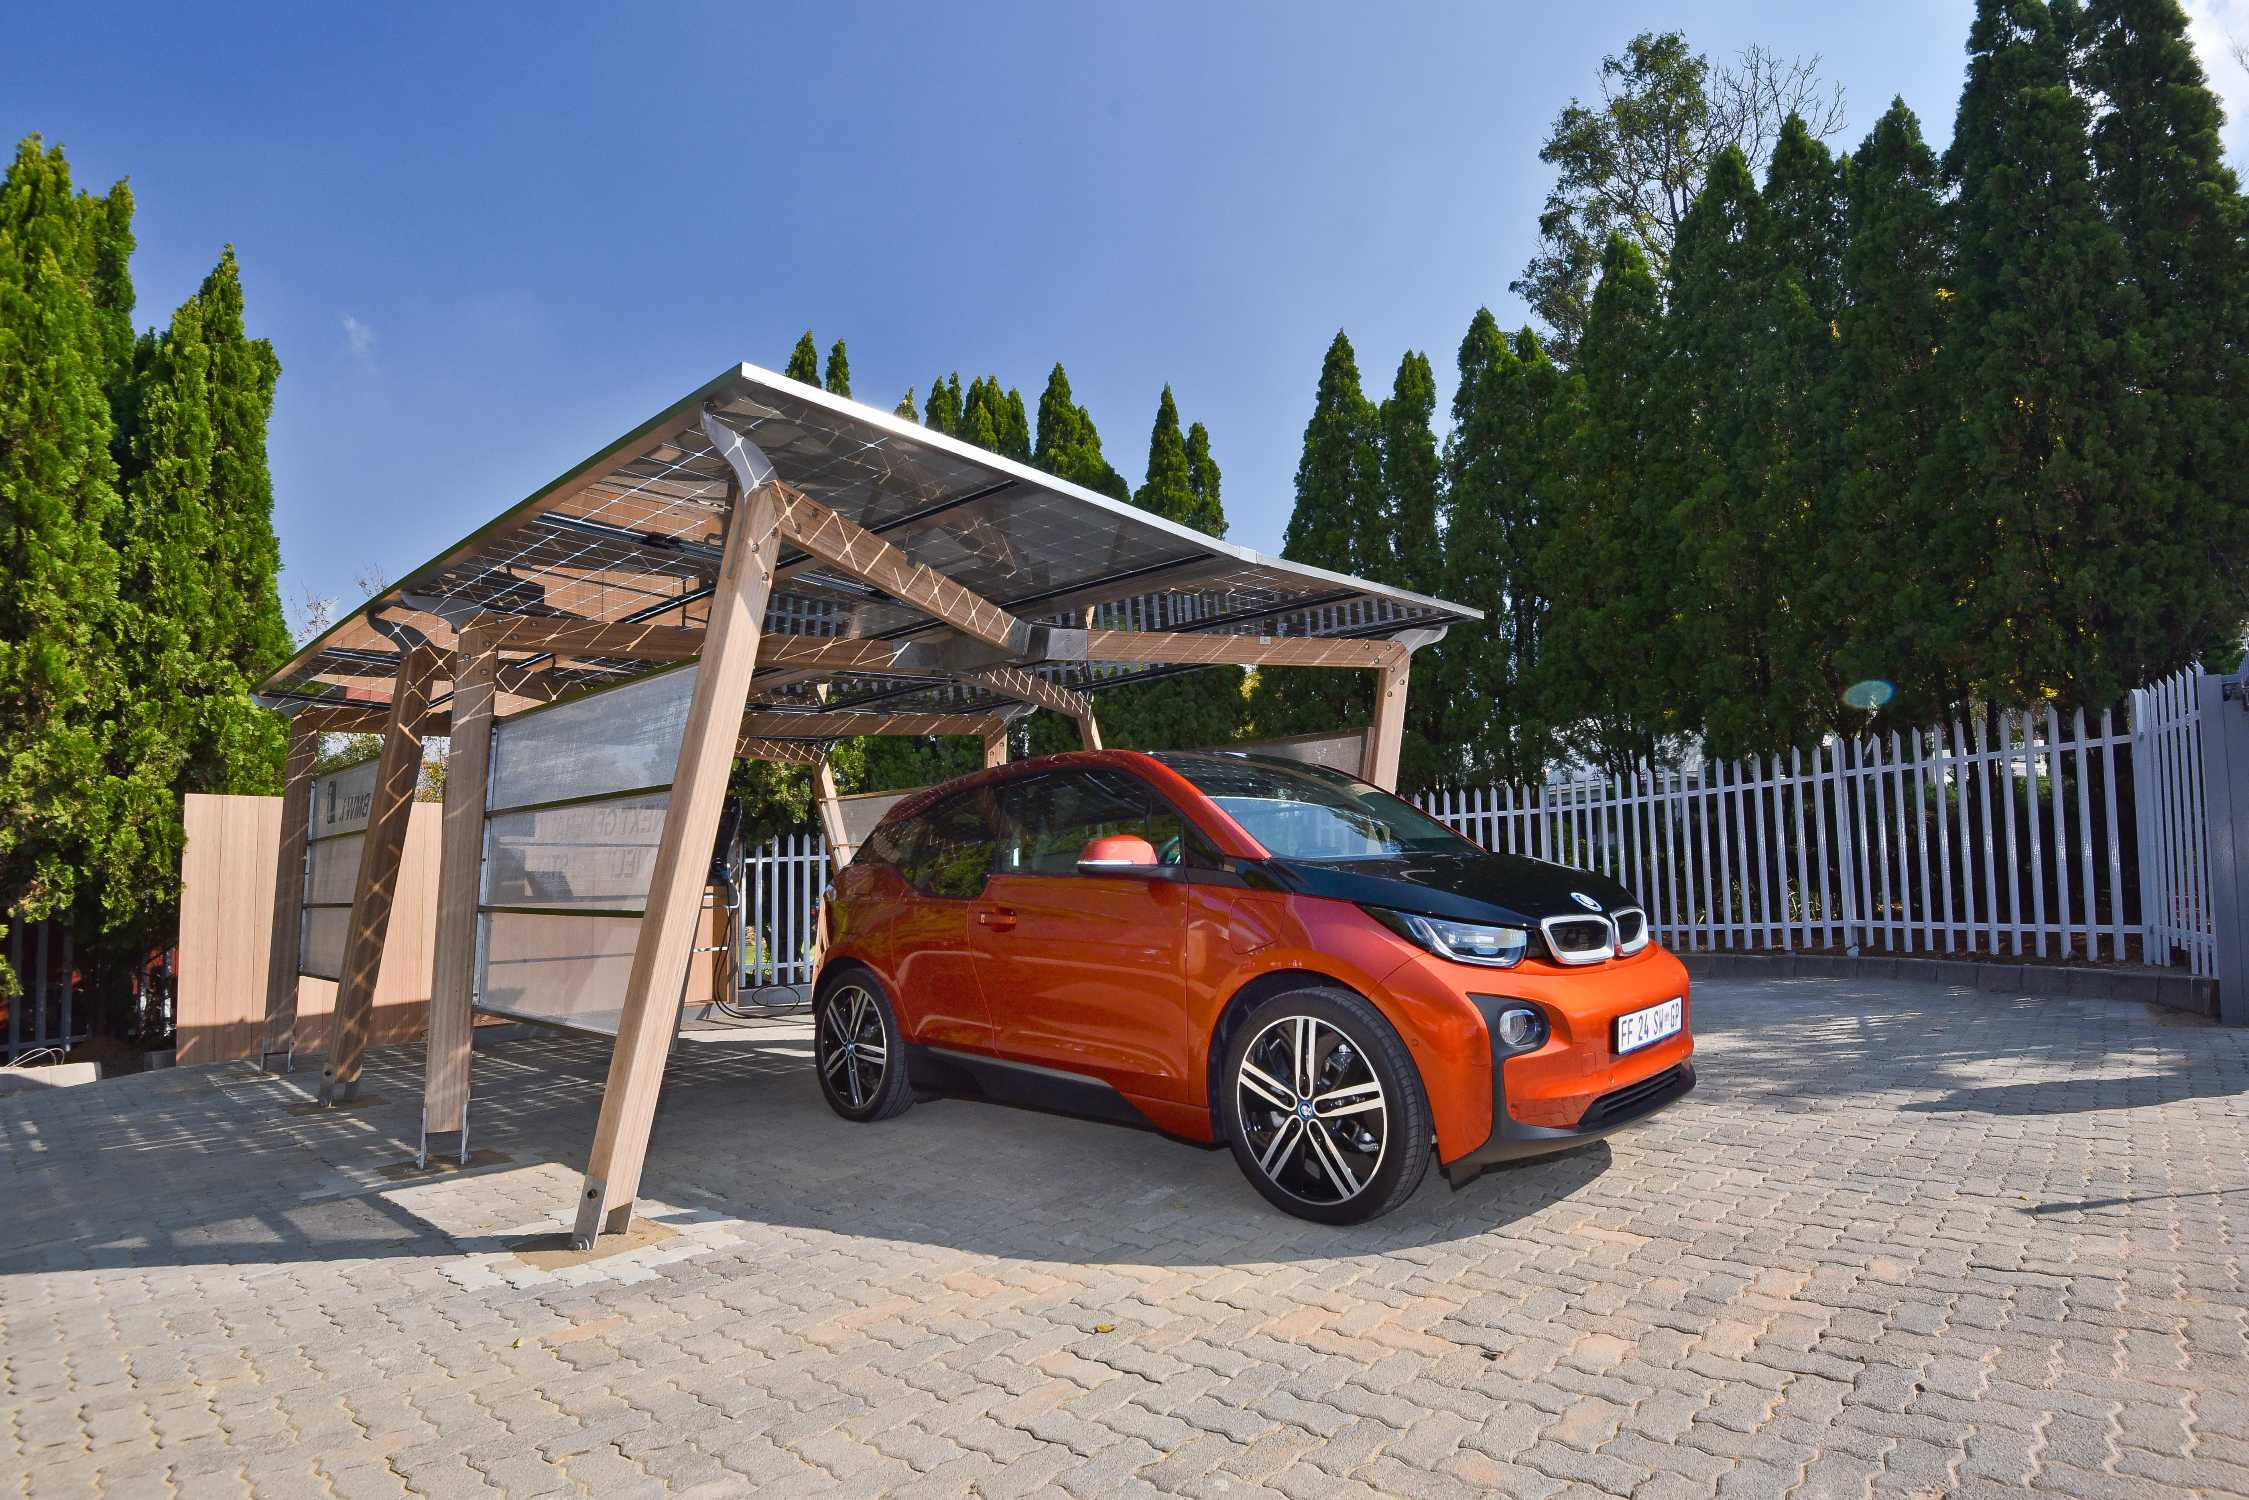 Bmw South Africa Starts Rolling Out Solar Carport Charging For